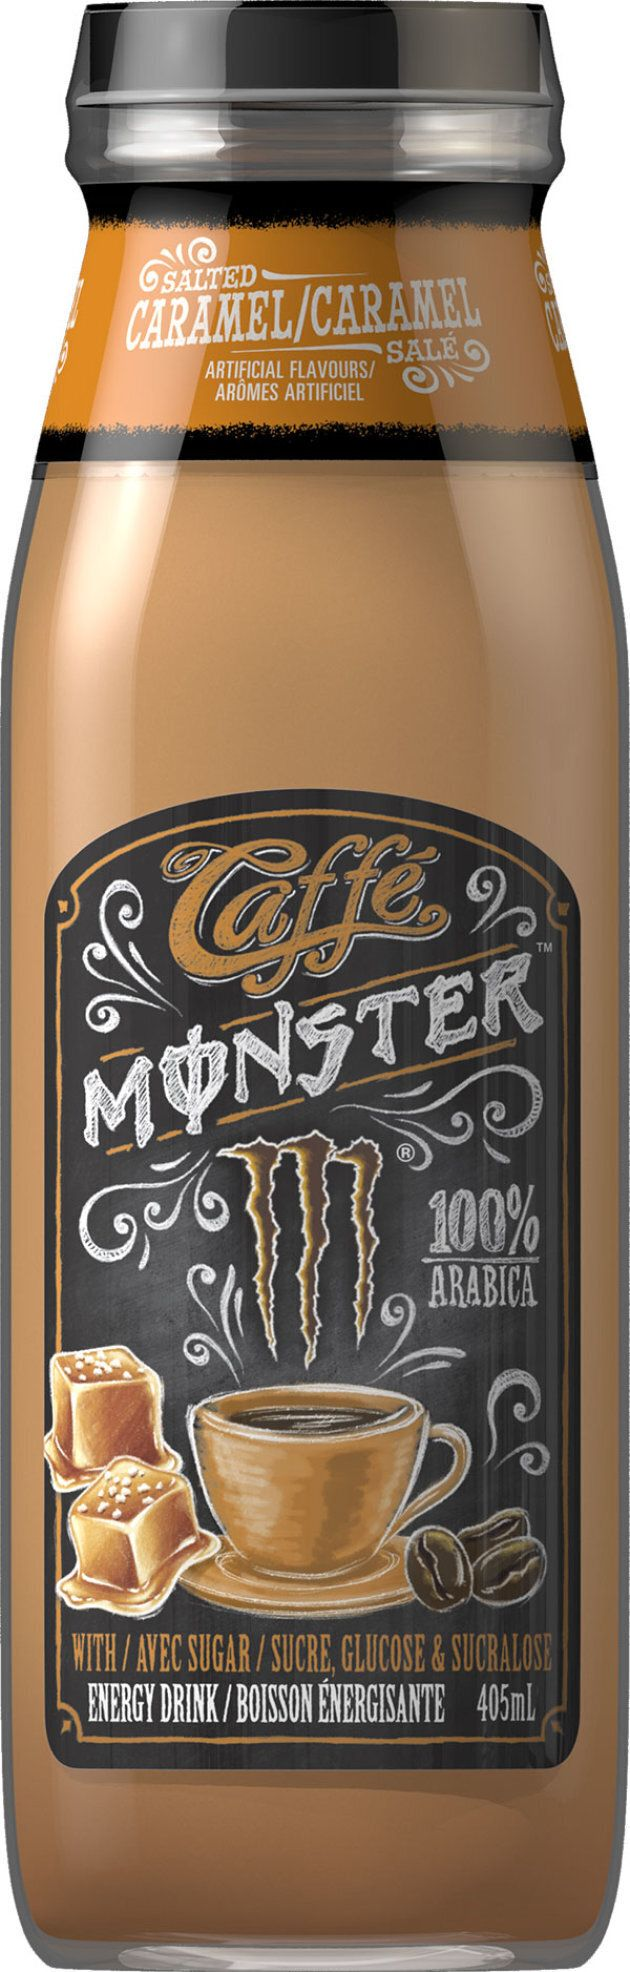 Monster Energy has chosen to recall their salted caramel Caffé Monster